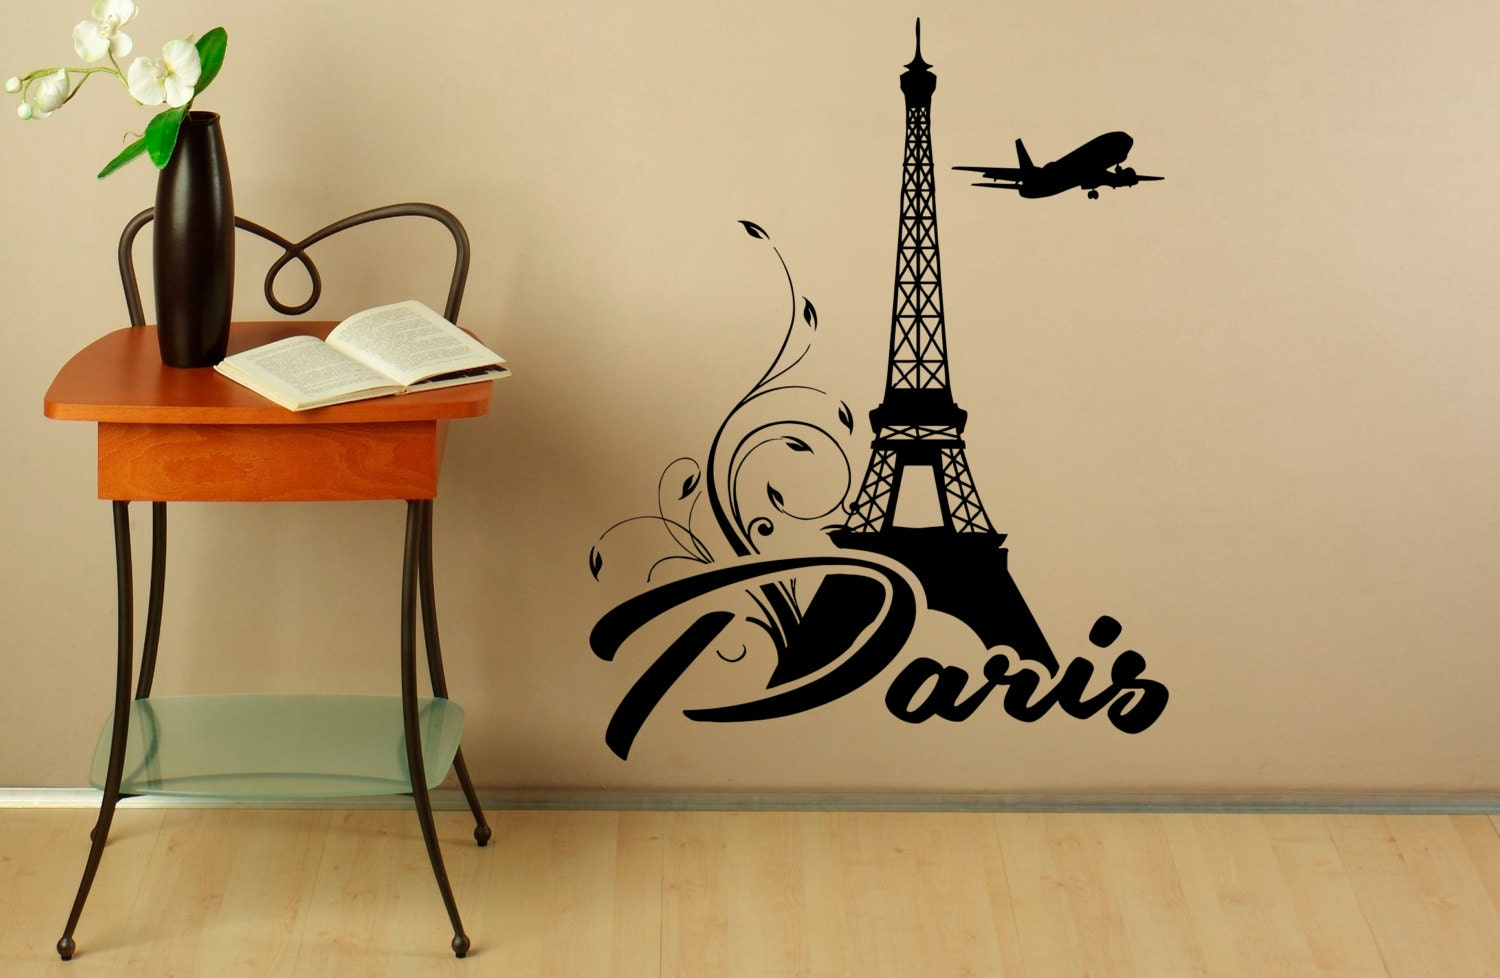 Eiffel tower wall decal vinyl stickers paris symbol home zoom amipublicfo Images